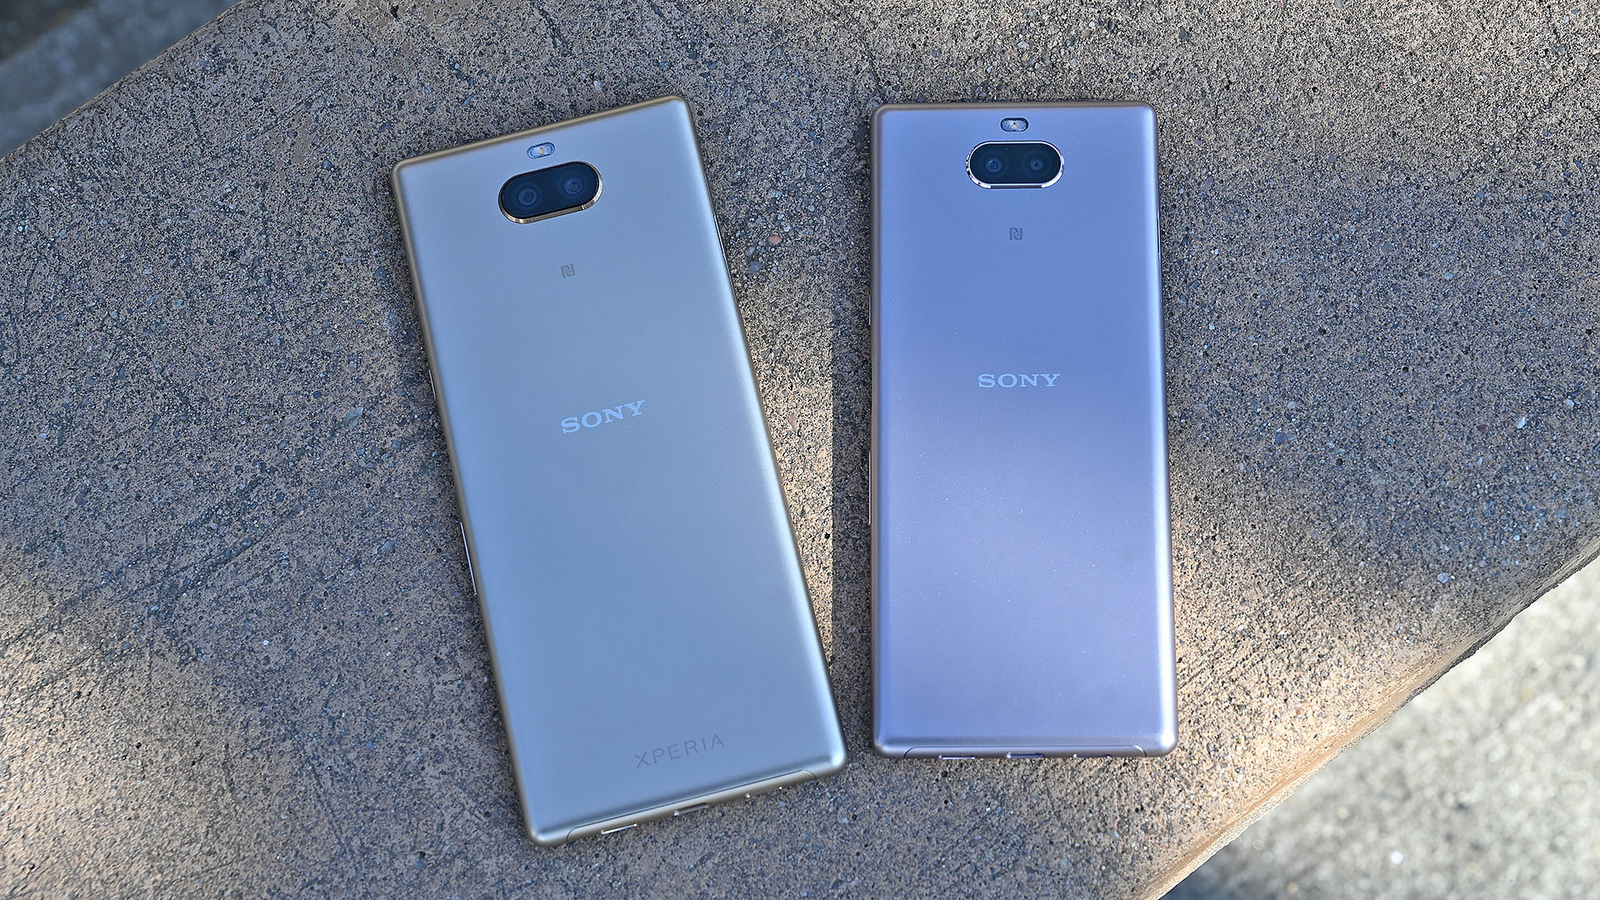 While both phones have dual cams, only the Xperia 10 Plus has a 2x zoom lens, The second camera on the standard Xperia 10 is used to measure depth for portrait mode shots.